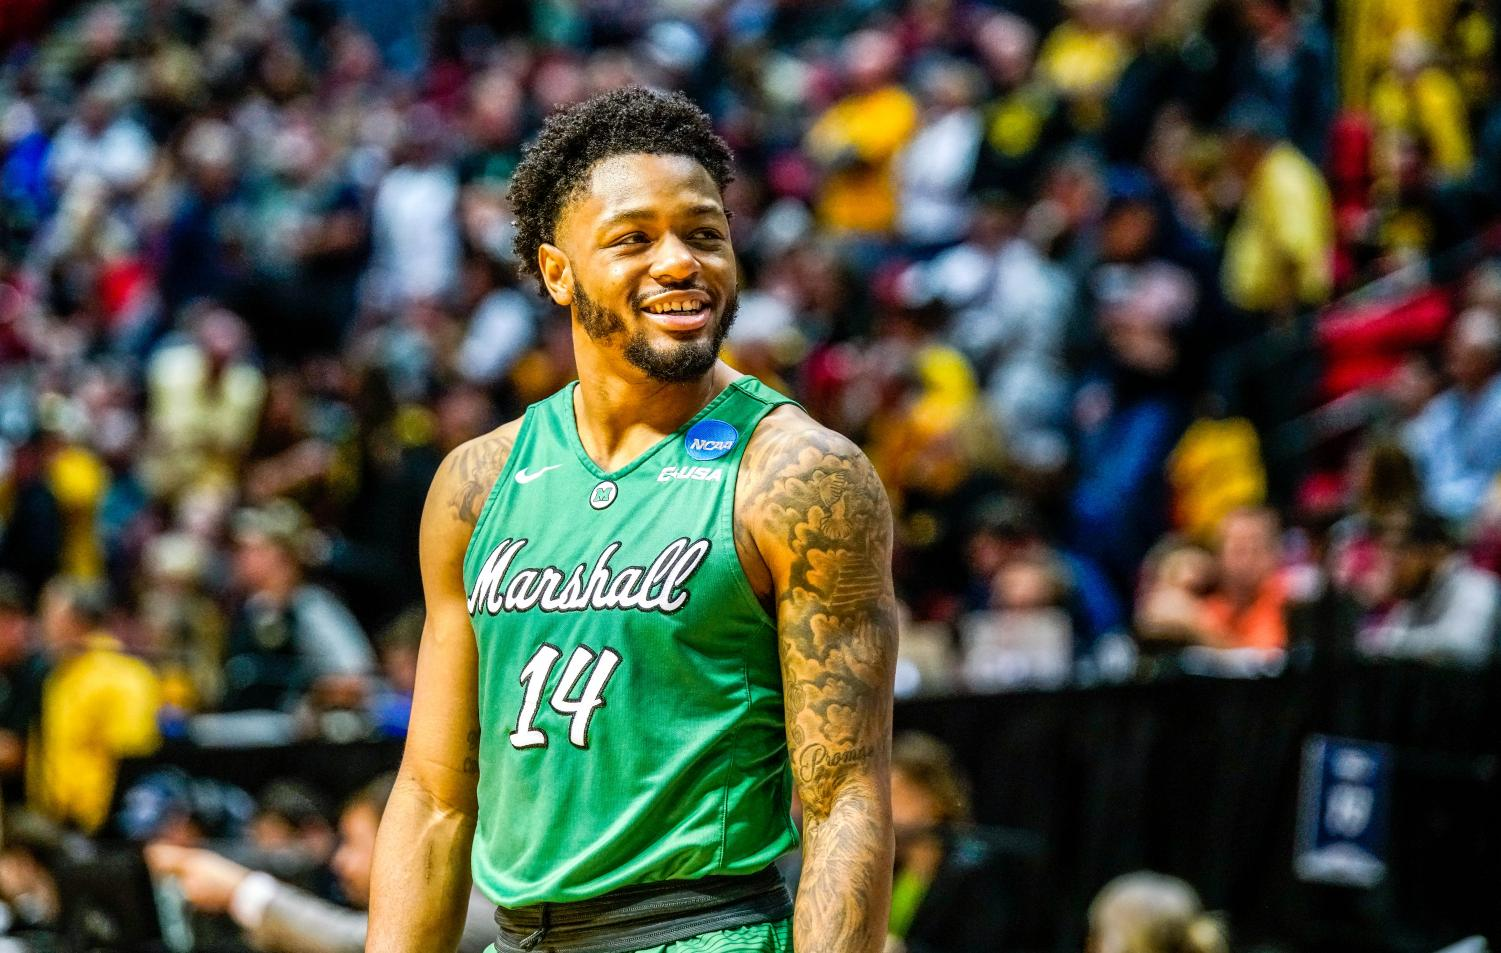 Junior+guard+C.J.+Burks+smiles+in-game+as+Marshall+approaches+its+first-ever+NCAA+Tournament+win.